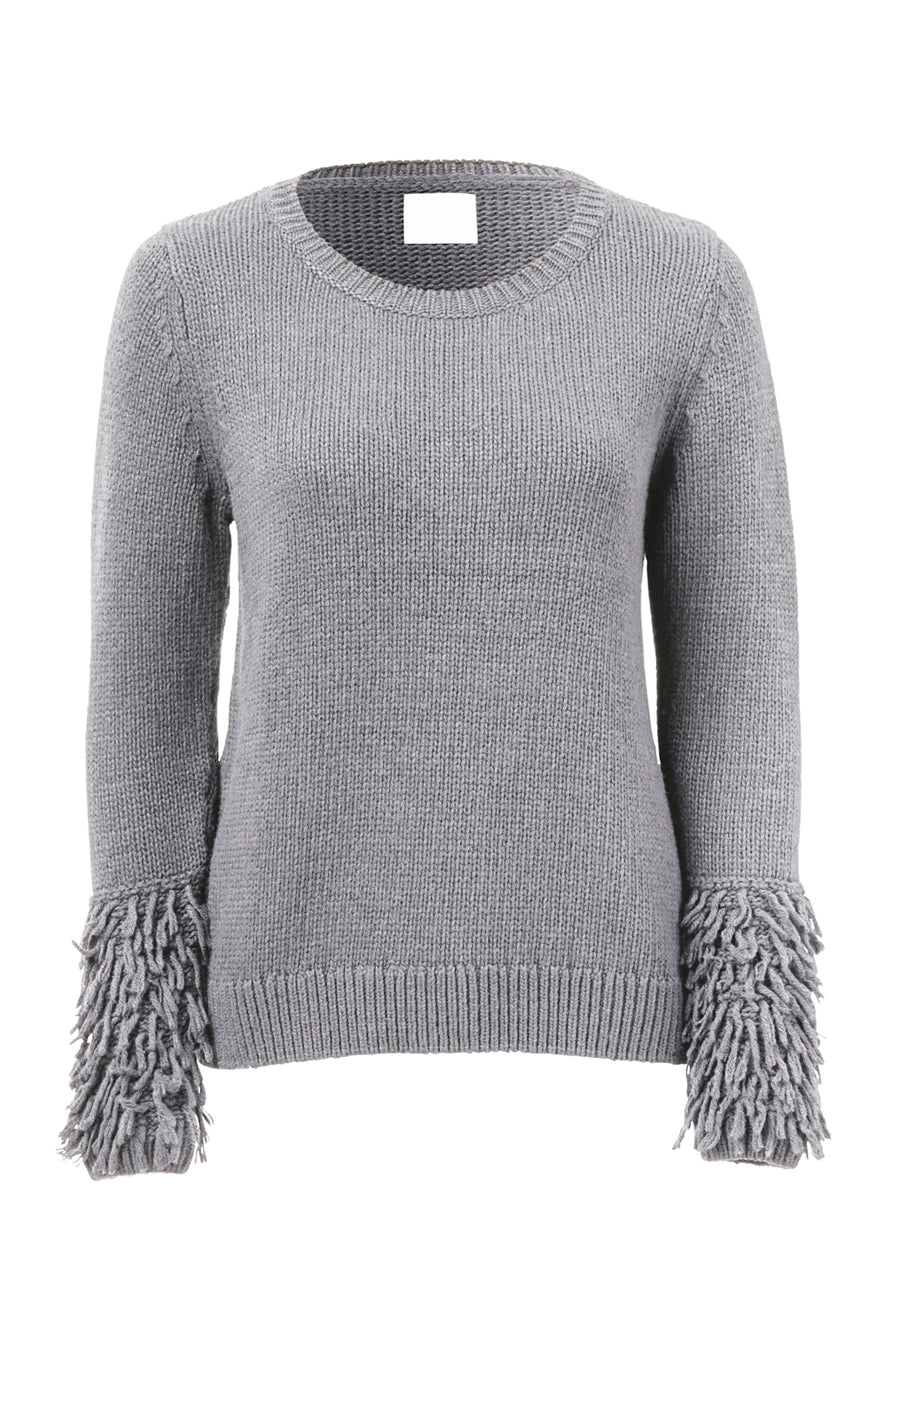 Takata Knit Jumper